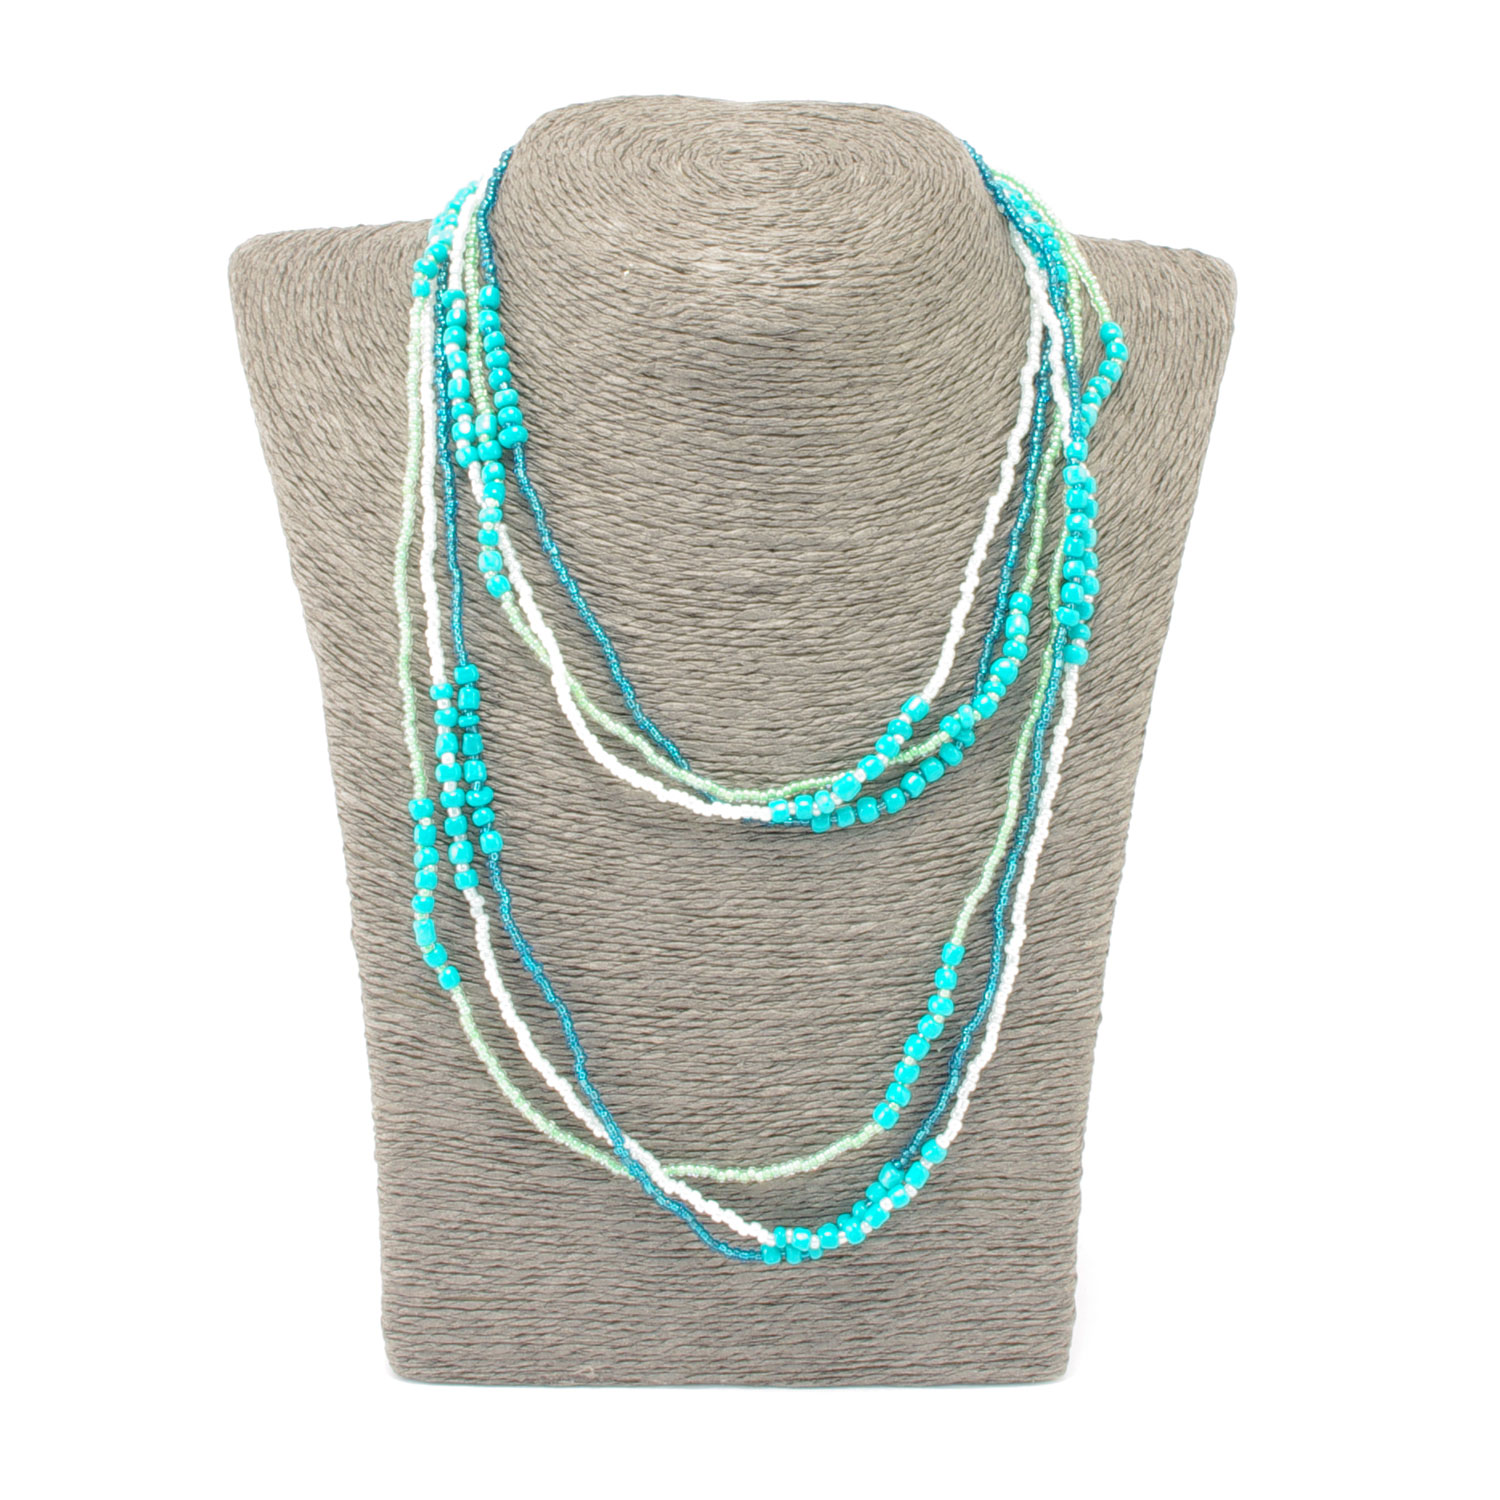 Trio of Hope Necklace in Turquoise Lime worn layered